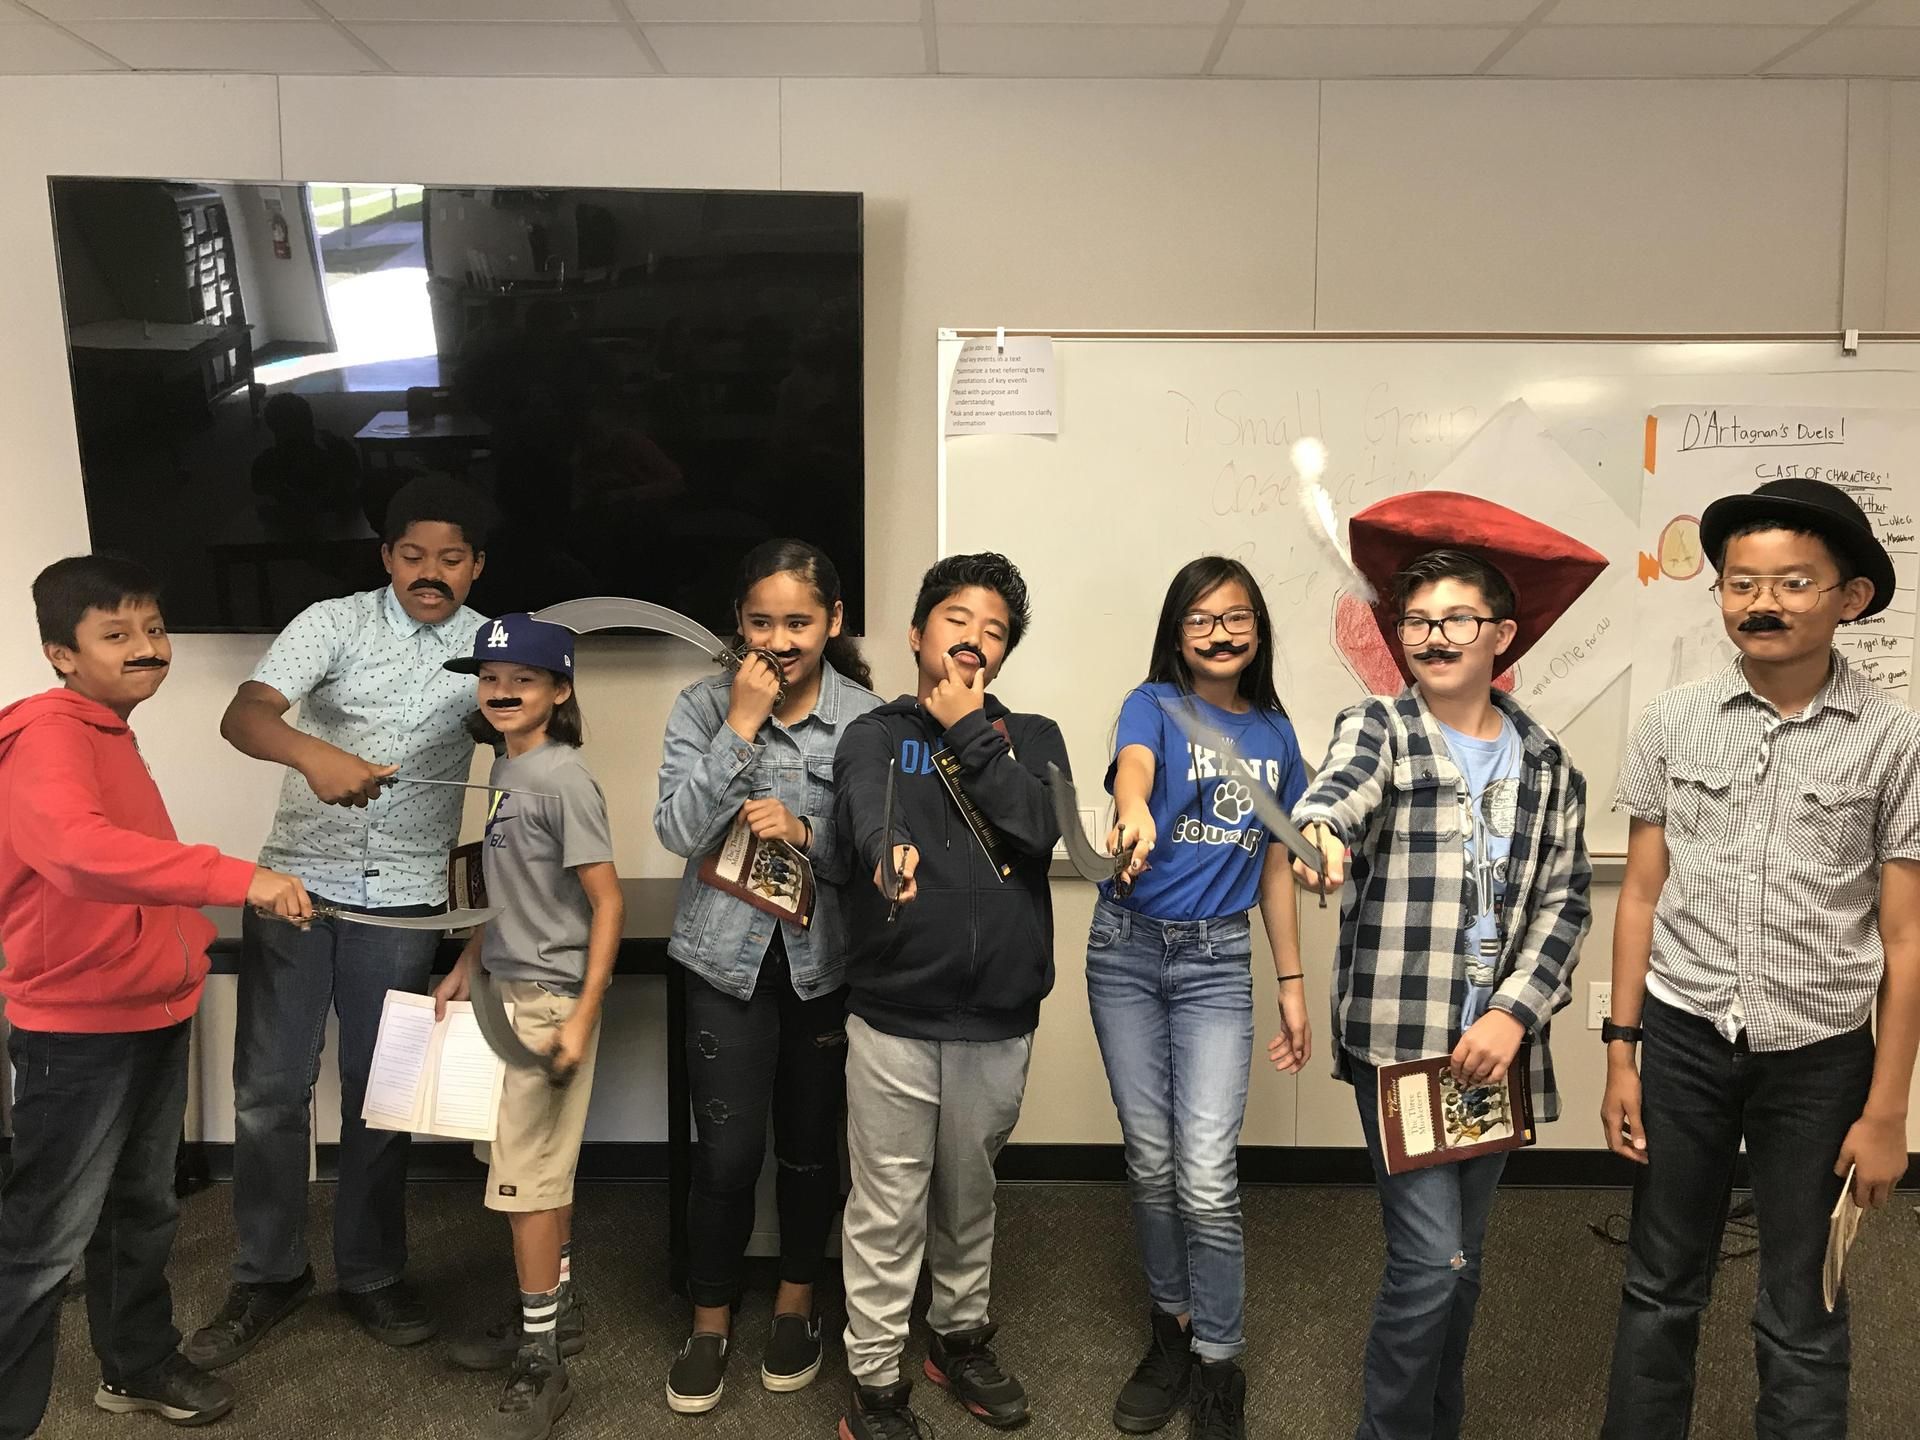 A Reader's Theatre performance of The Three Musketeers